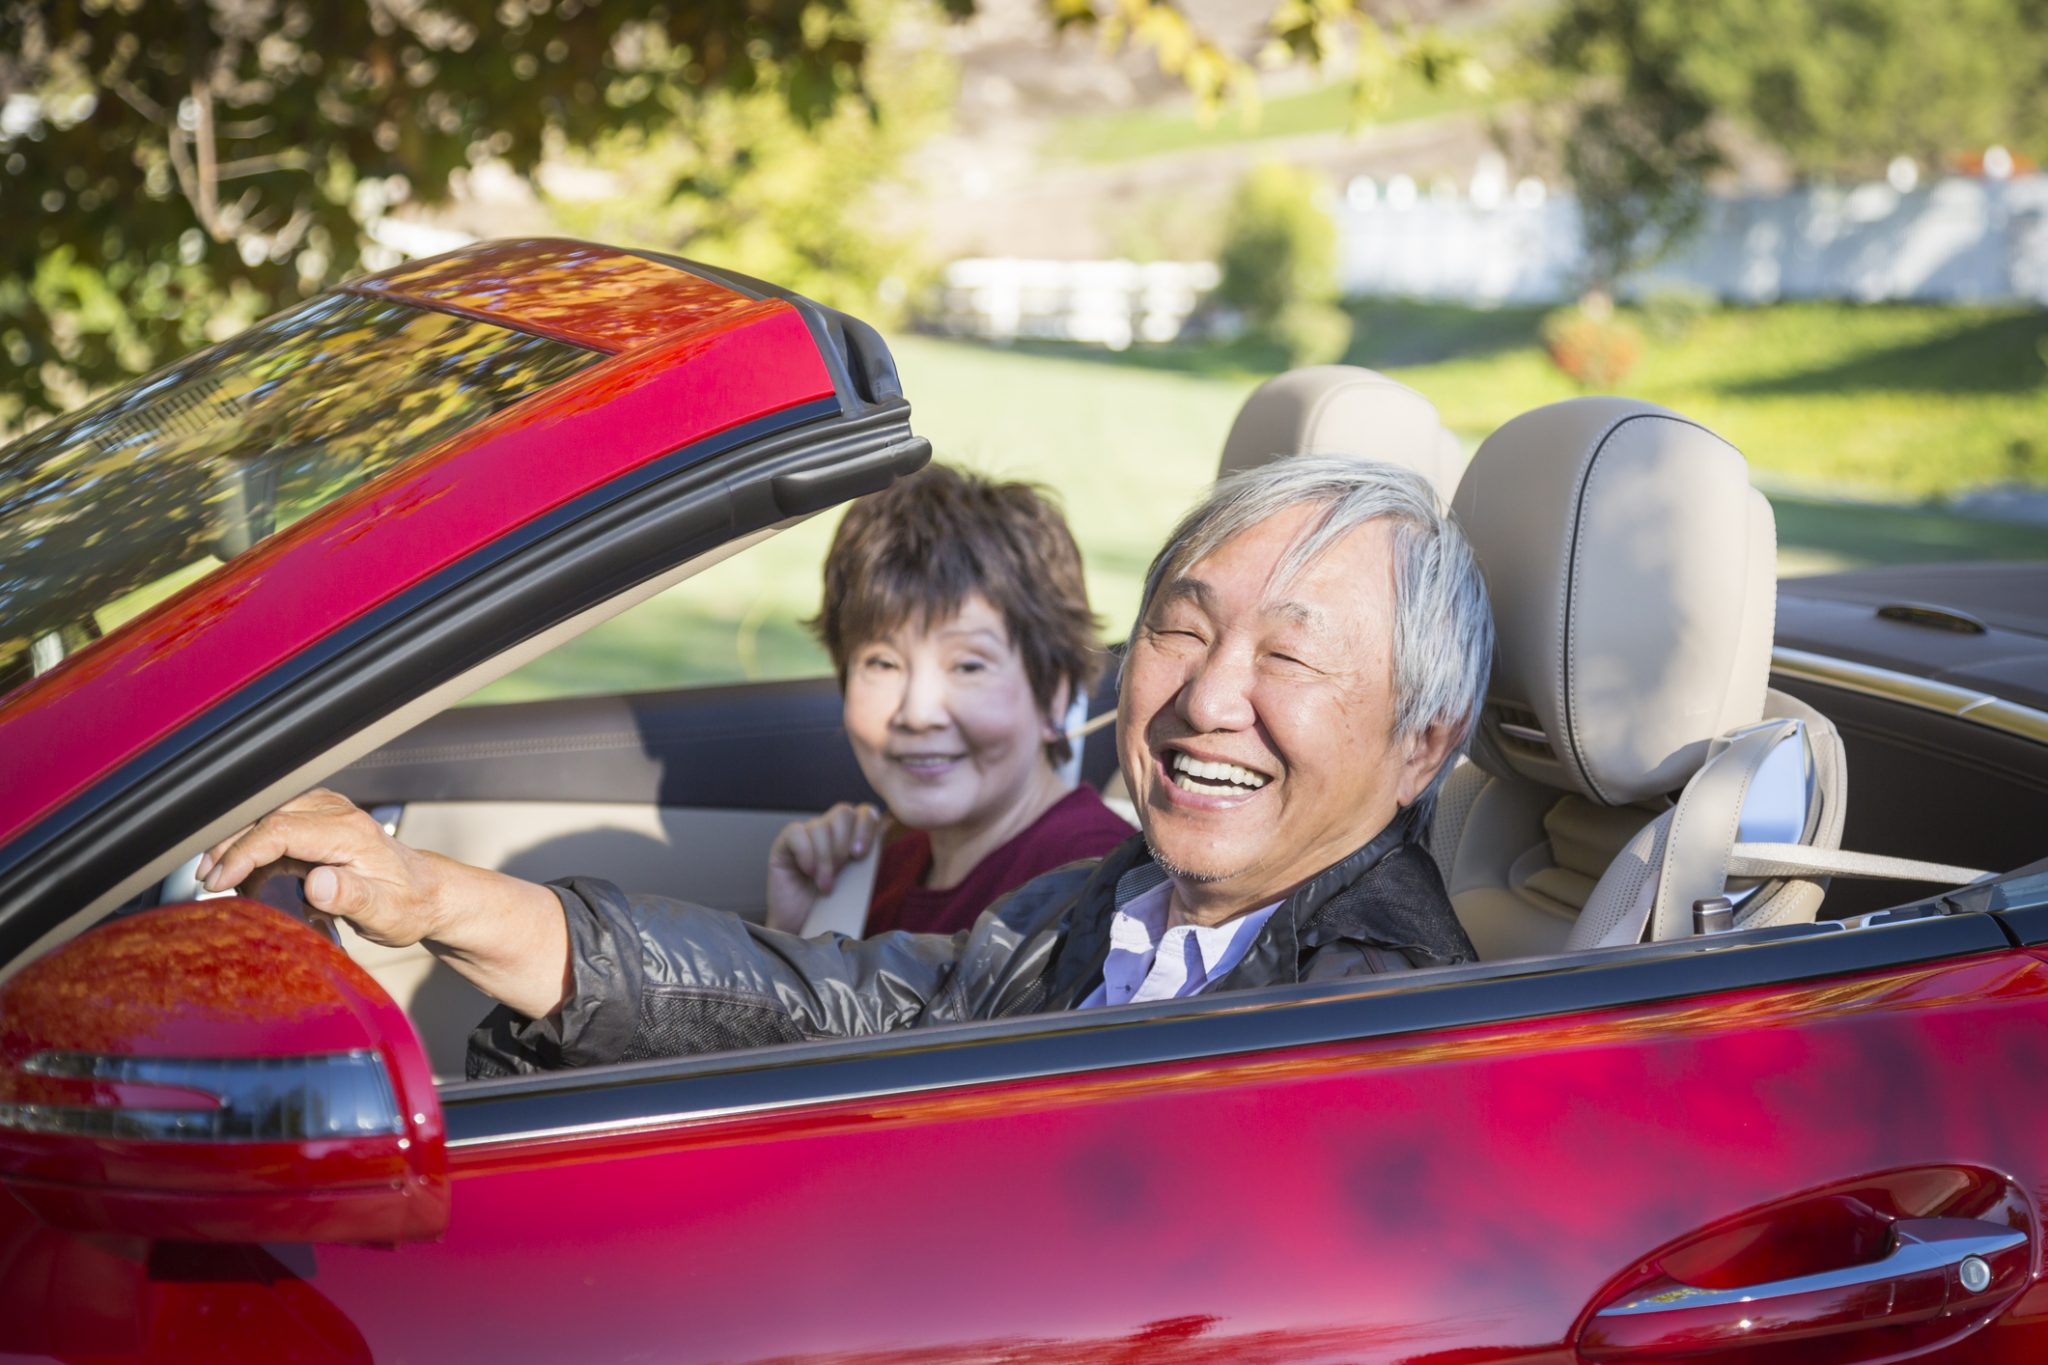 Attractive Happy Couple Enjoying An Afternoon Drive in Their Convertible.